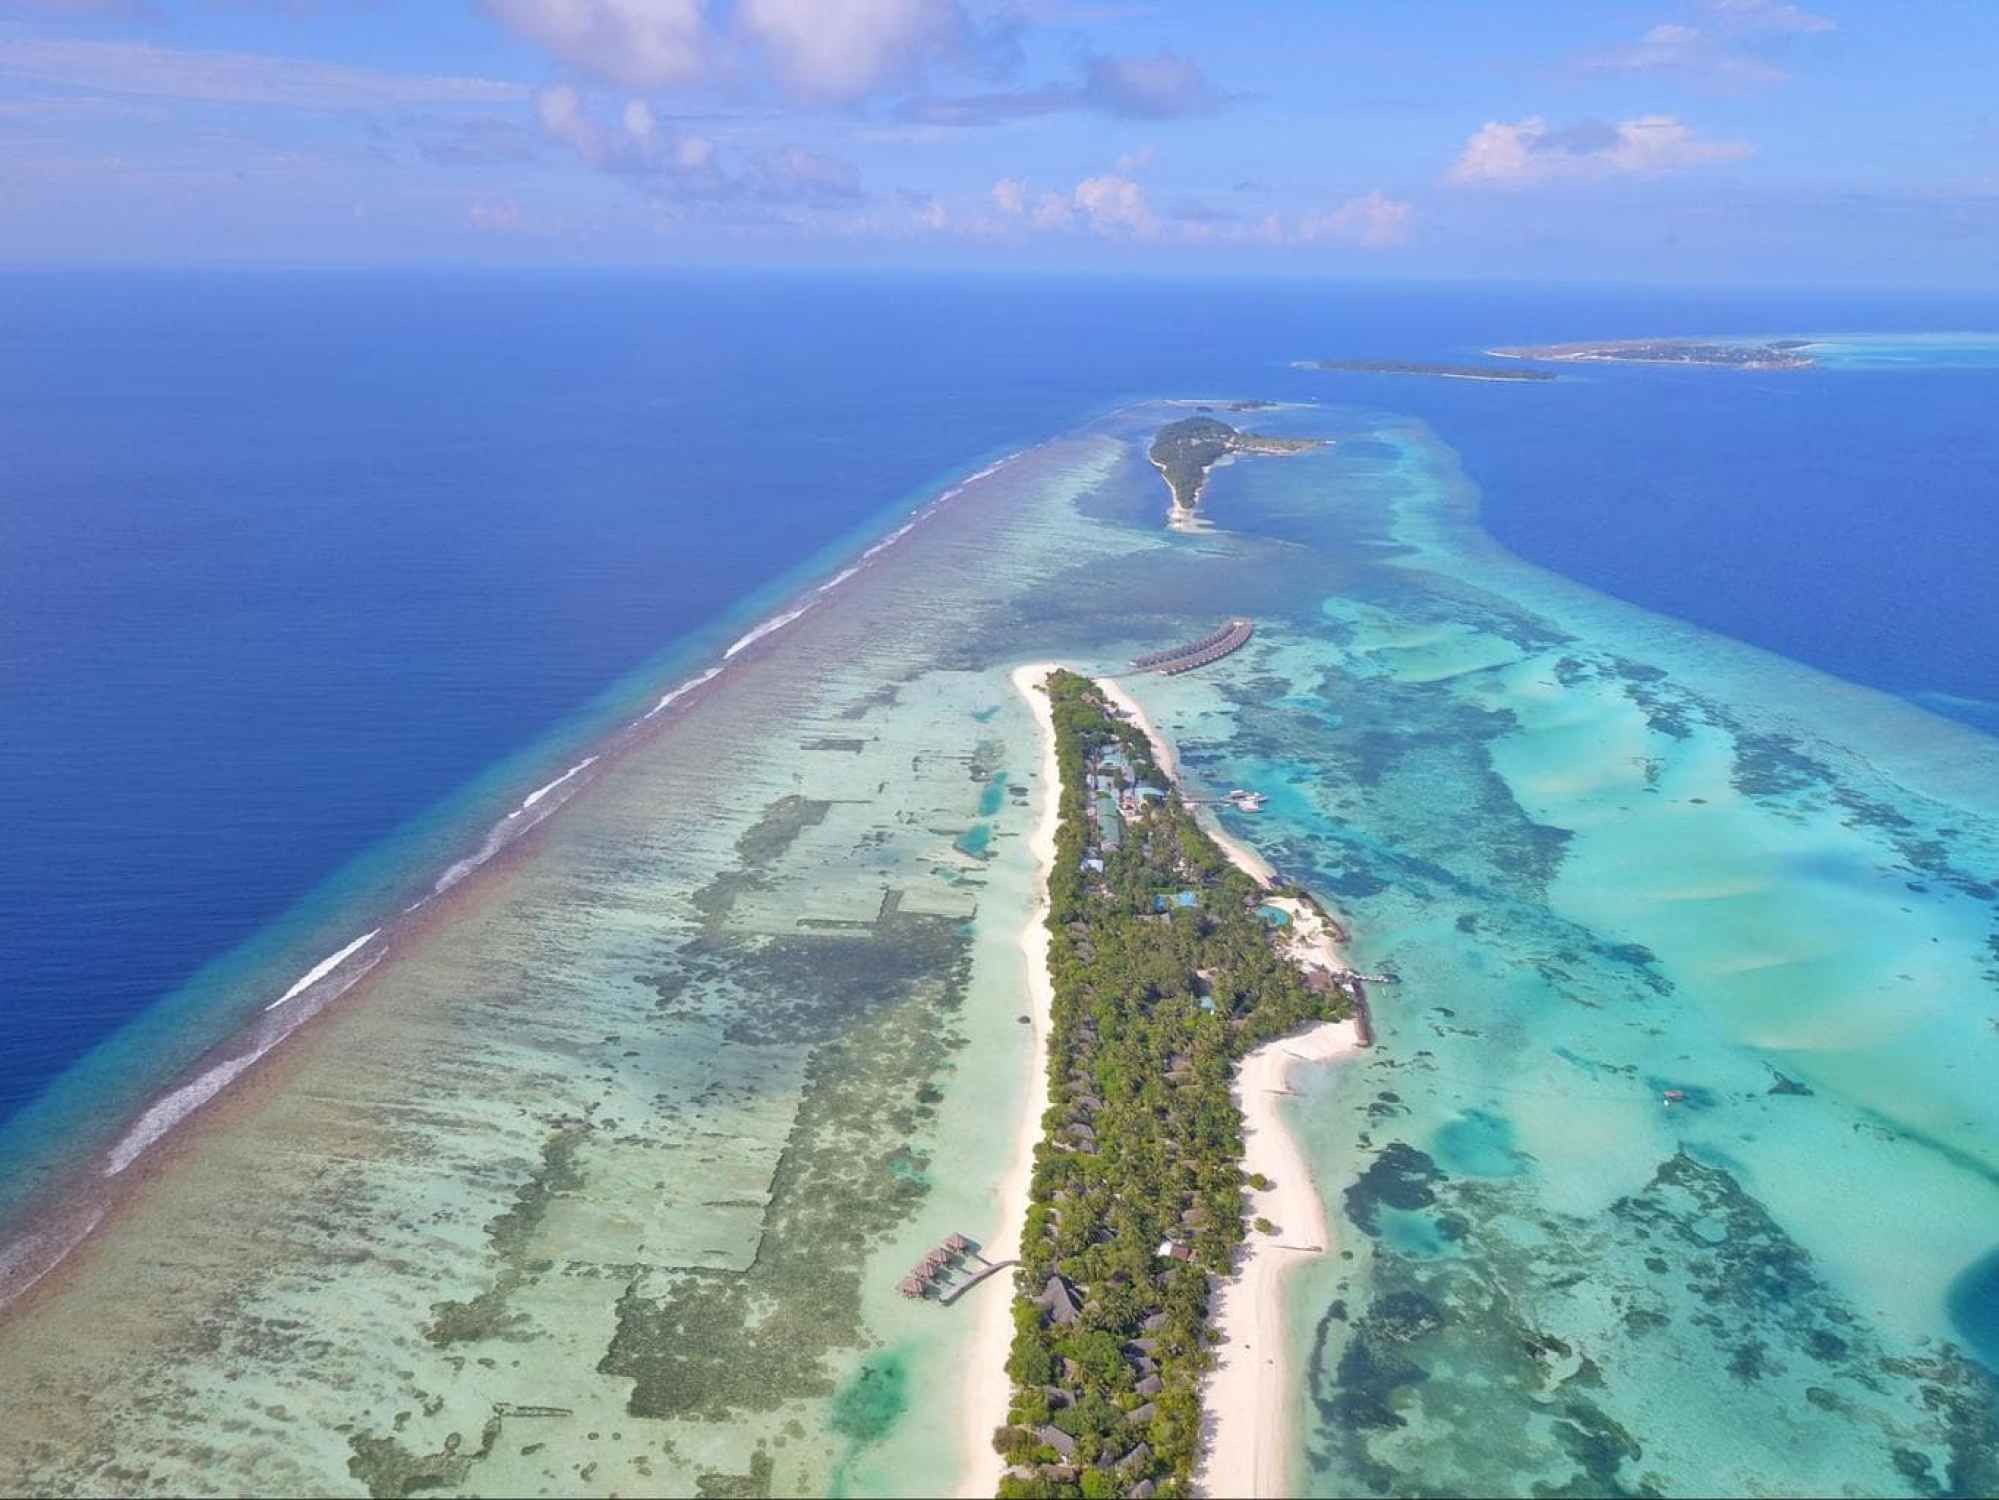 LUX* Maldives from the sky